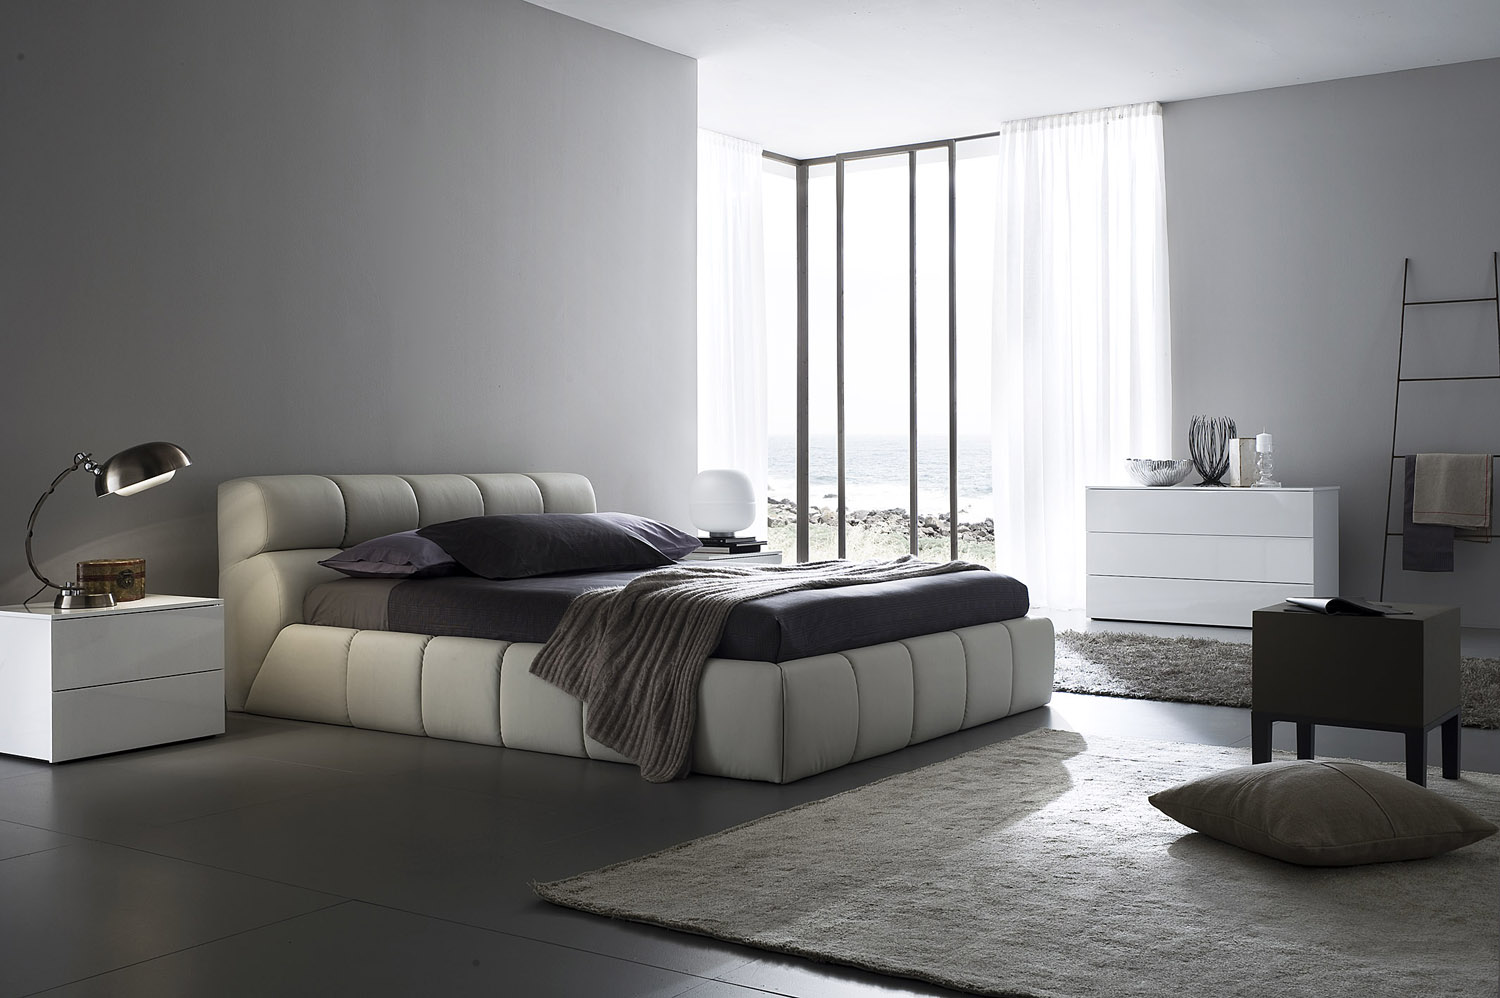 Bedroom Decorating Ideas from vinco - ^